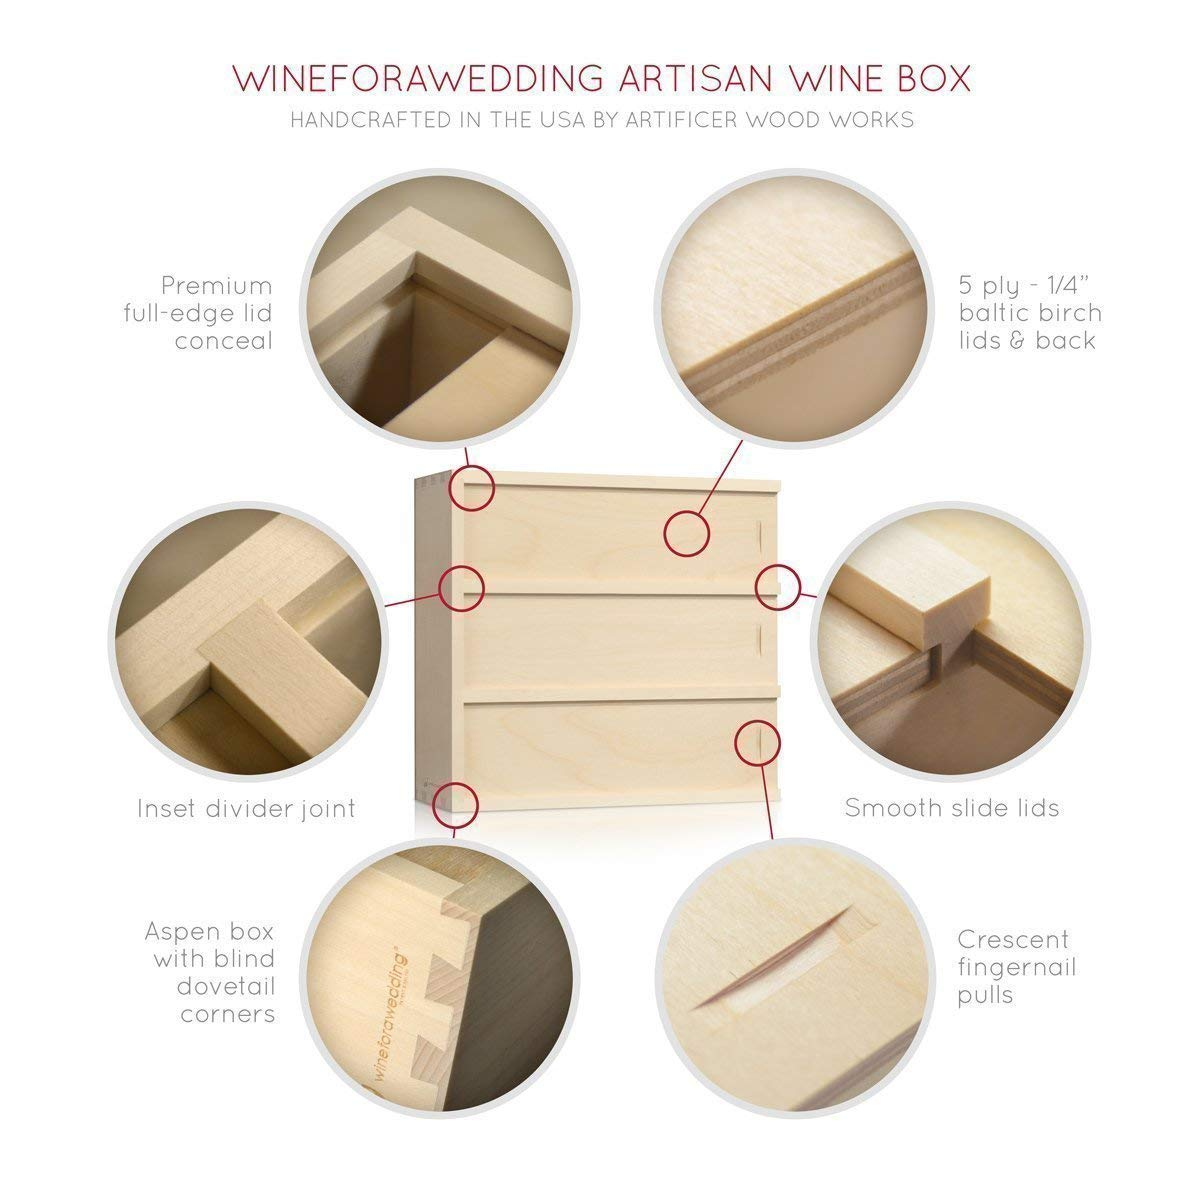 Custom Anniversary Wine Box - Family Vintage // Wedding Gift for the Couple - by WineforaWedding® Wedding Wine Box by Artificer Wood Works (Image #7)